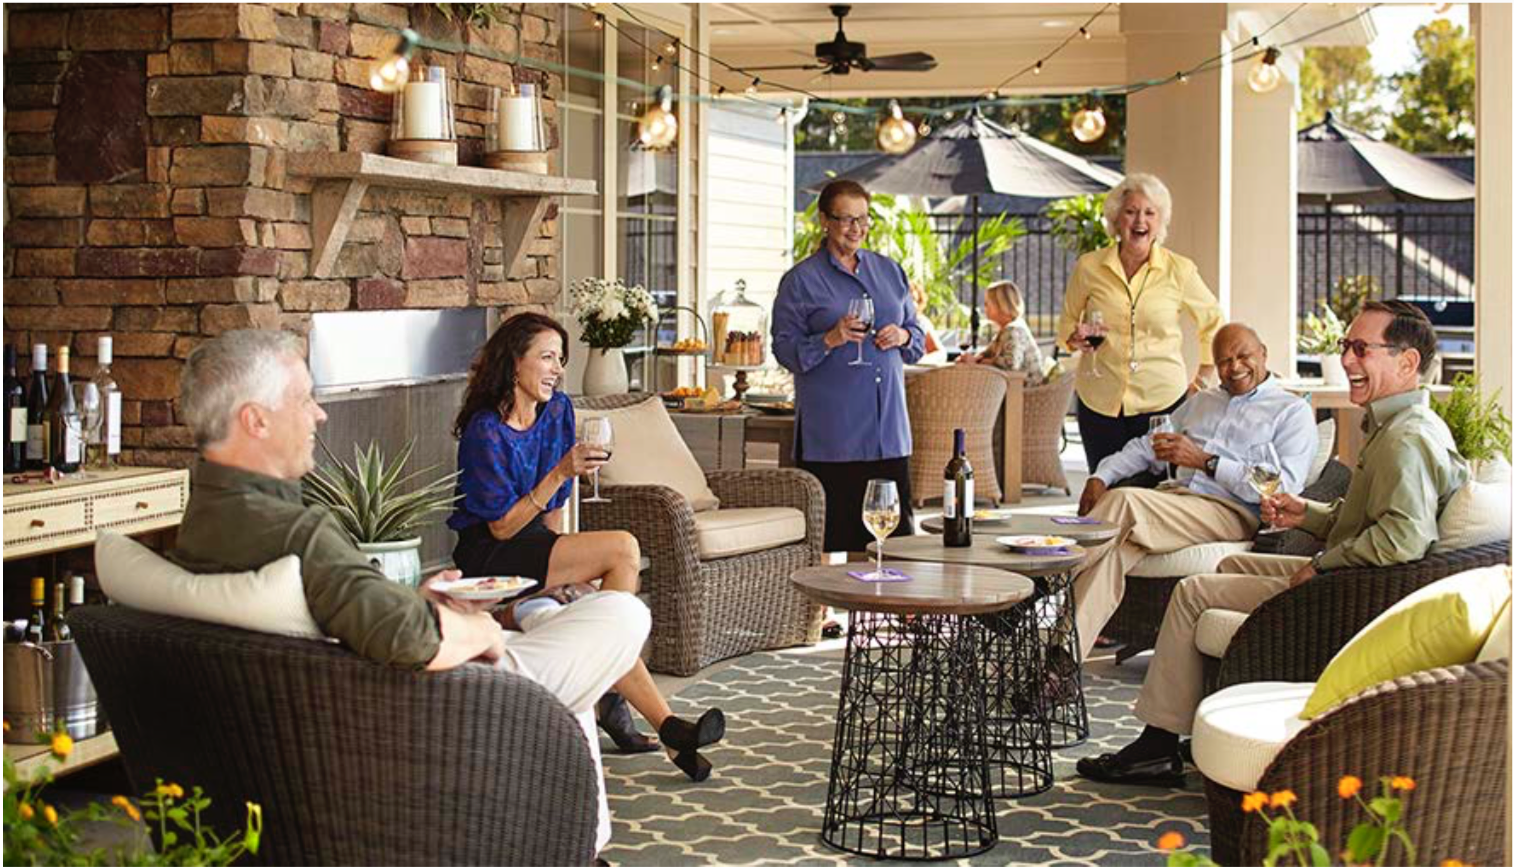 A group of poeple age 55+ having a patio party